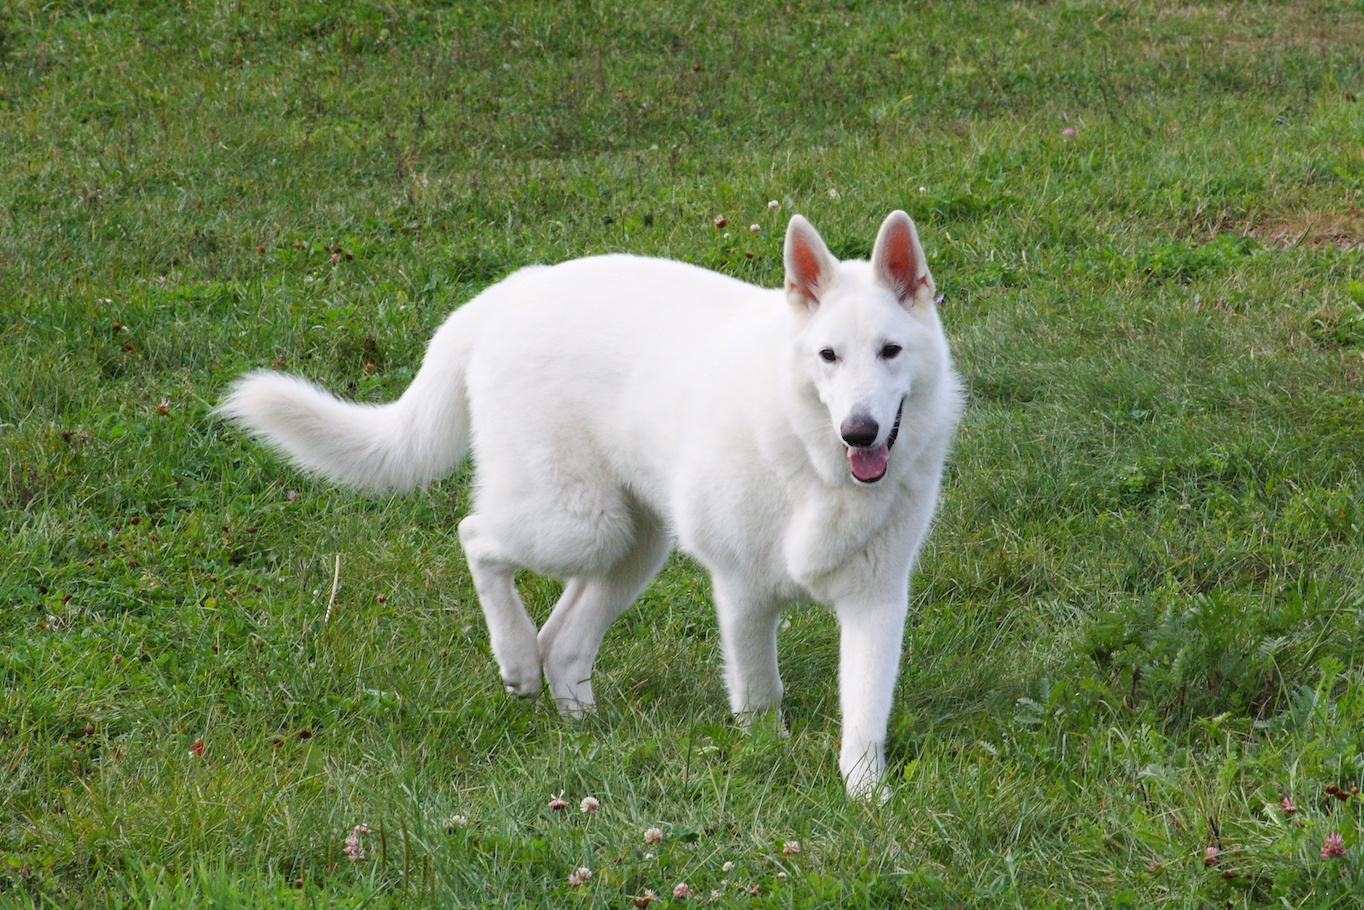 White German Shepherd walking